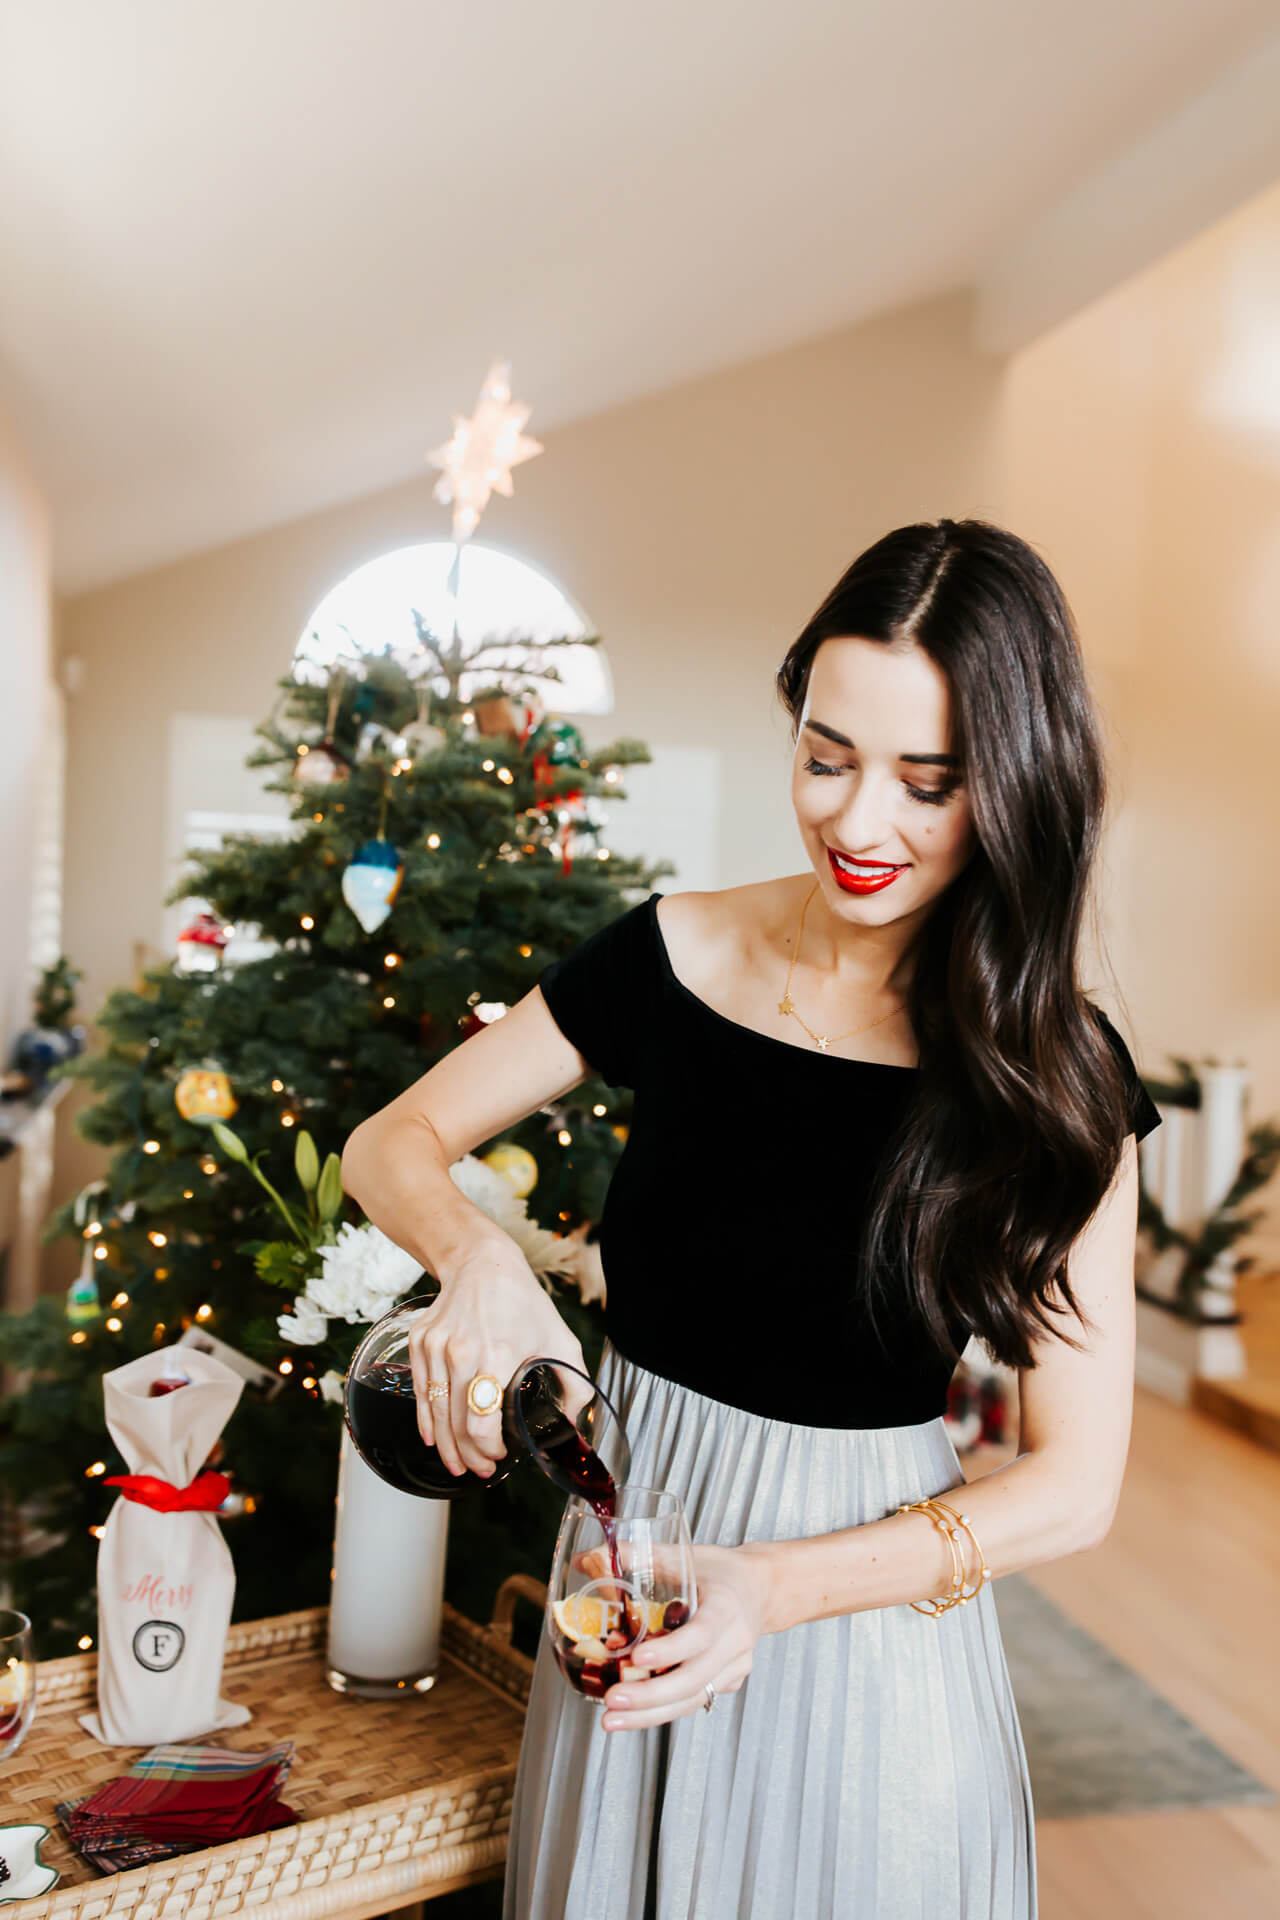 Sharing my favorite personalized gift ideas for Christmas